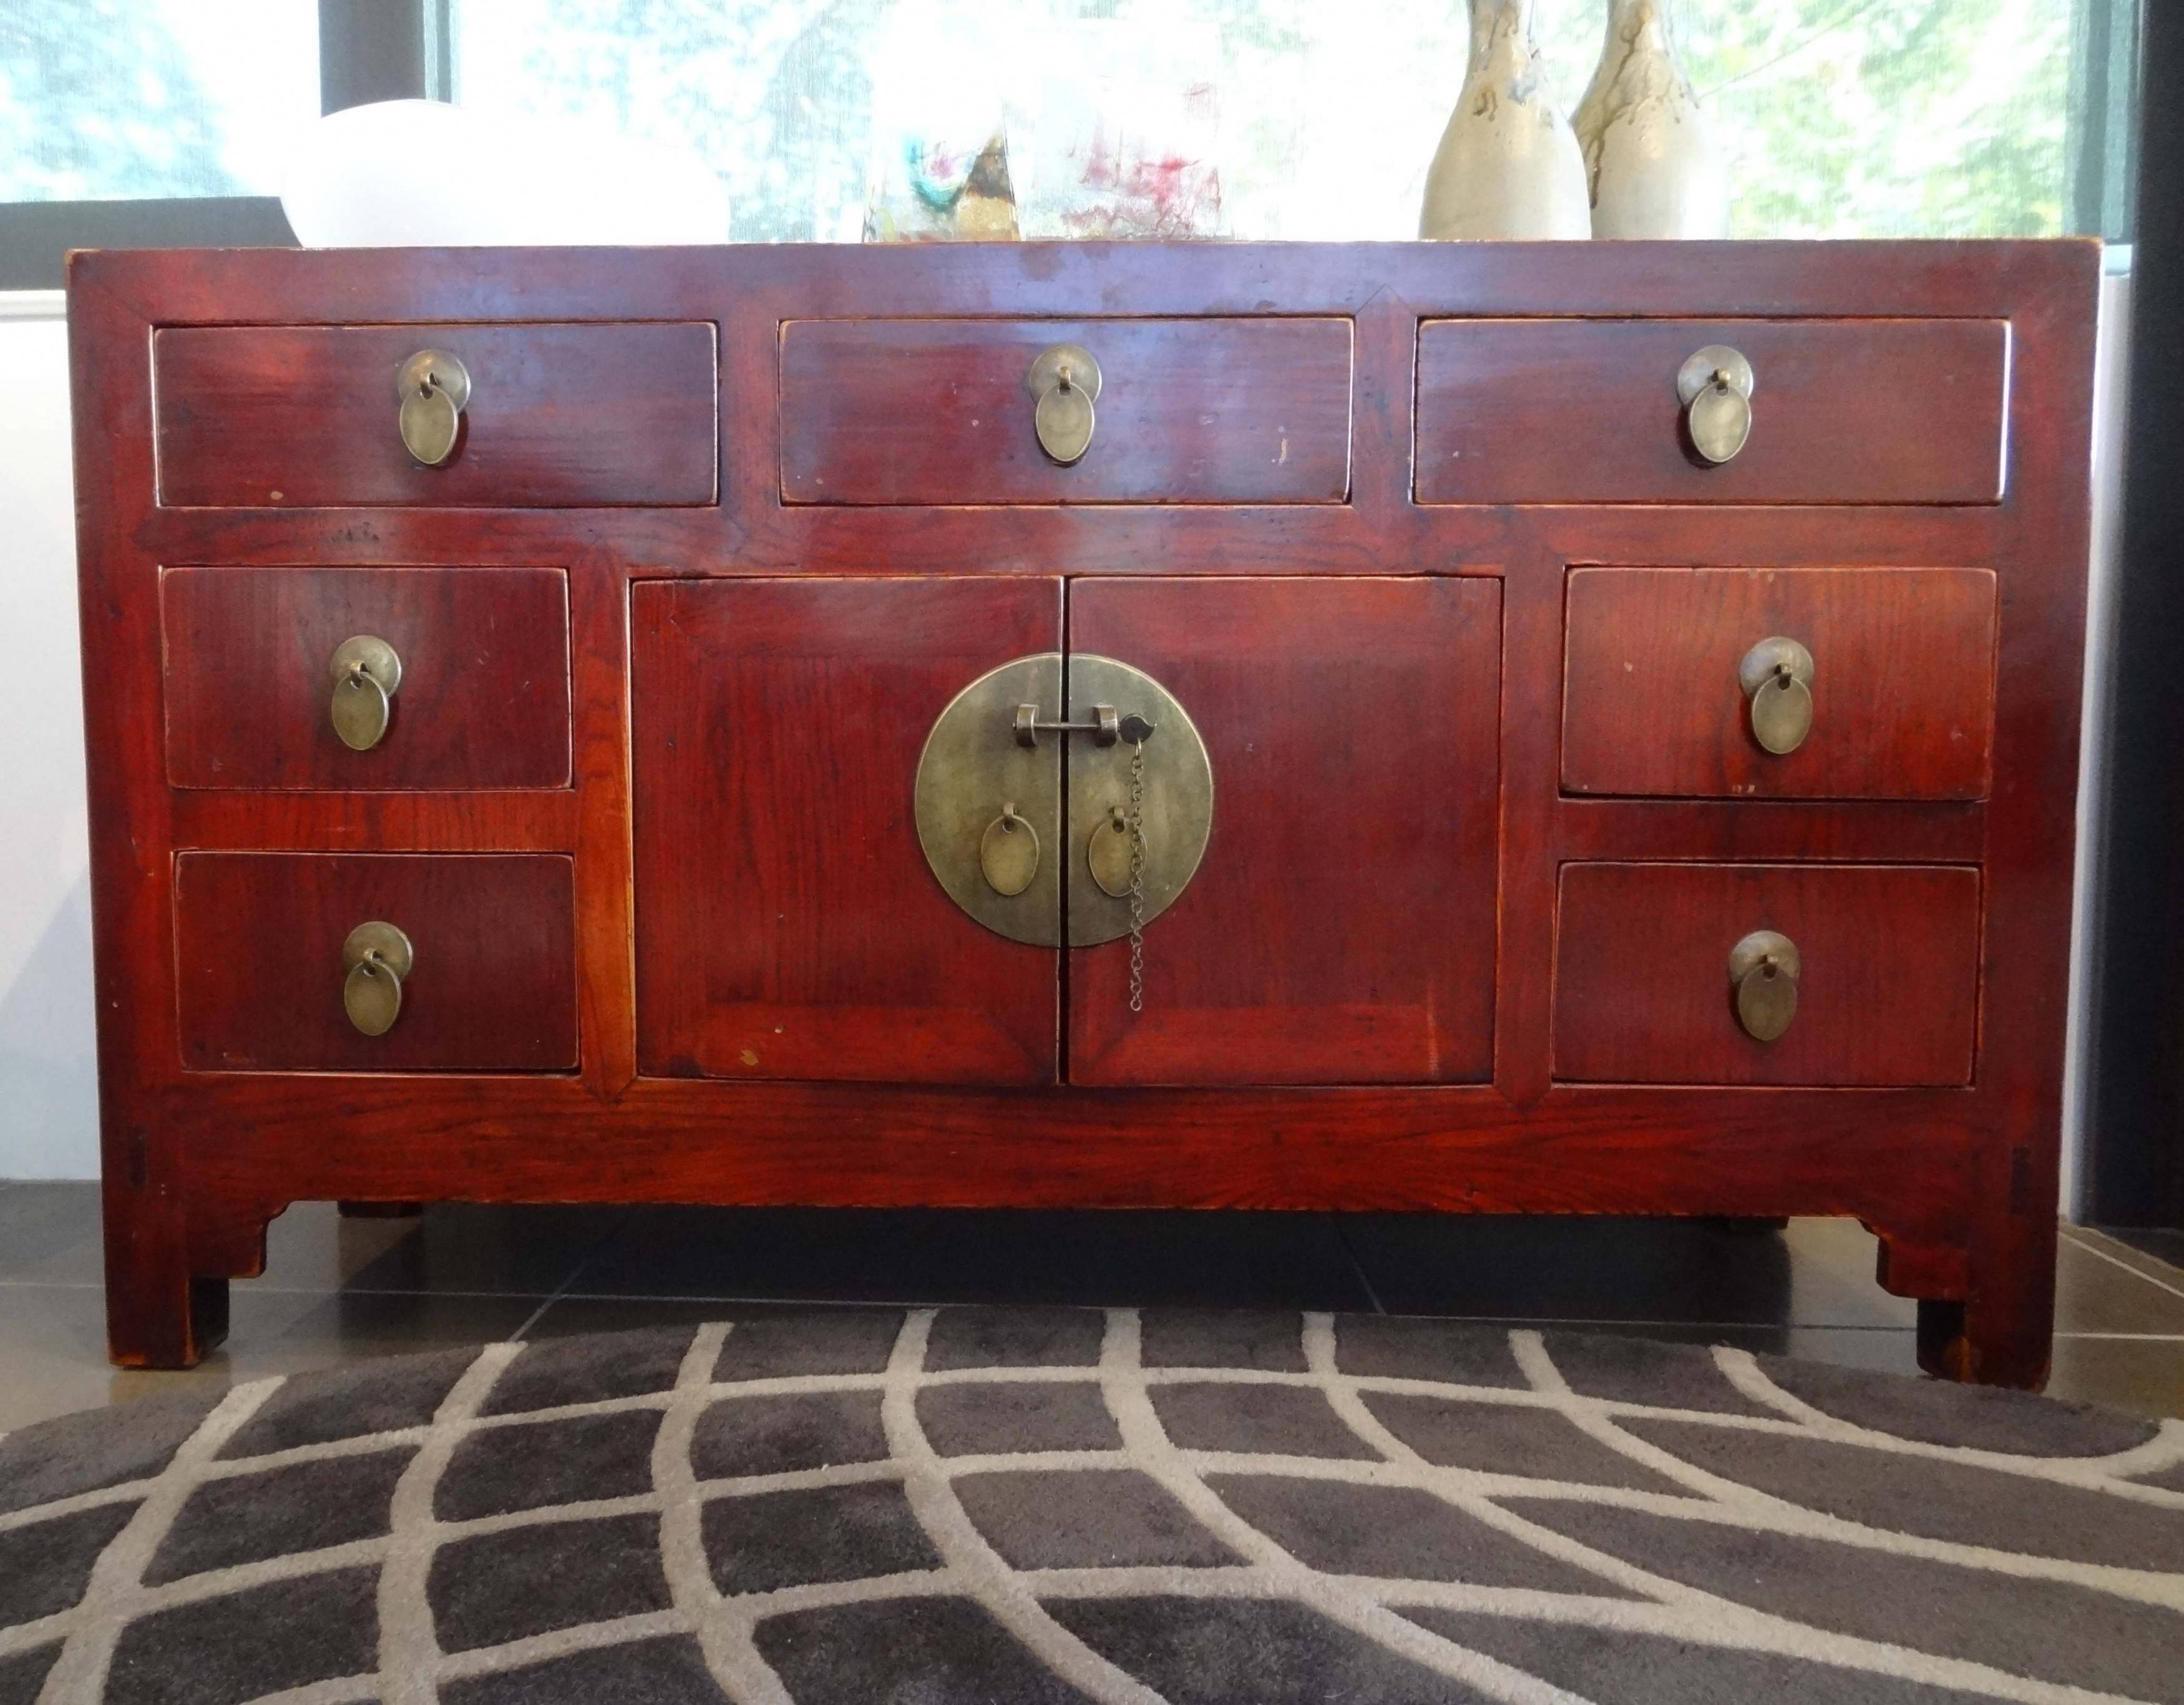 Antique Sideboards | Gallery Categories | Aptos Cruz Inside Chinese Sideboards (View 5 of 20)